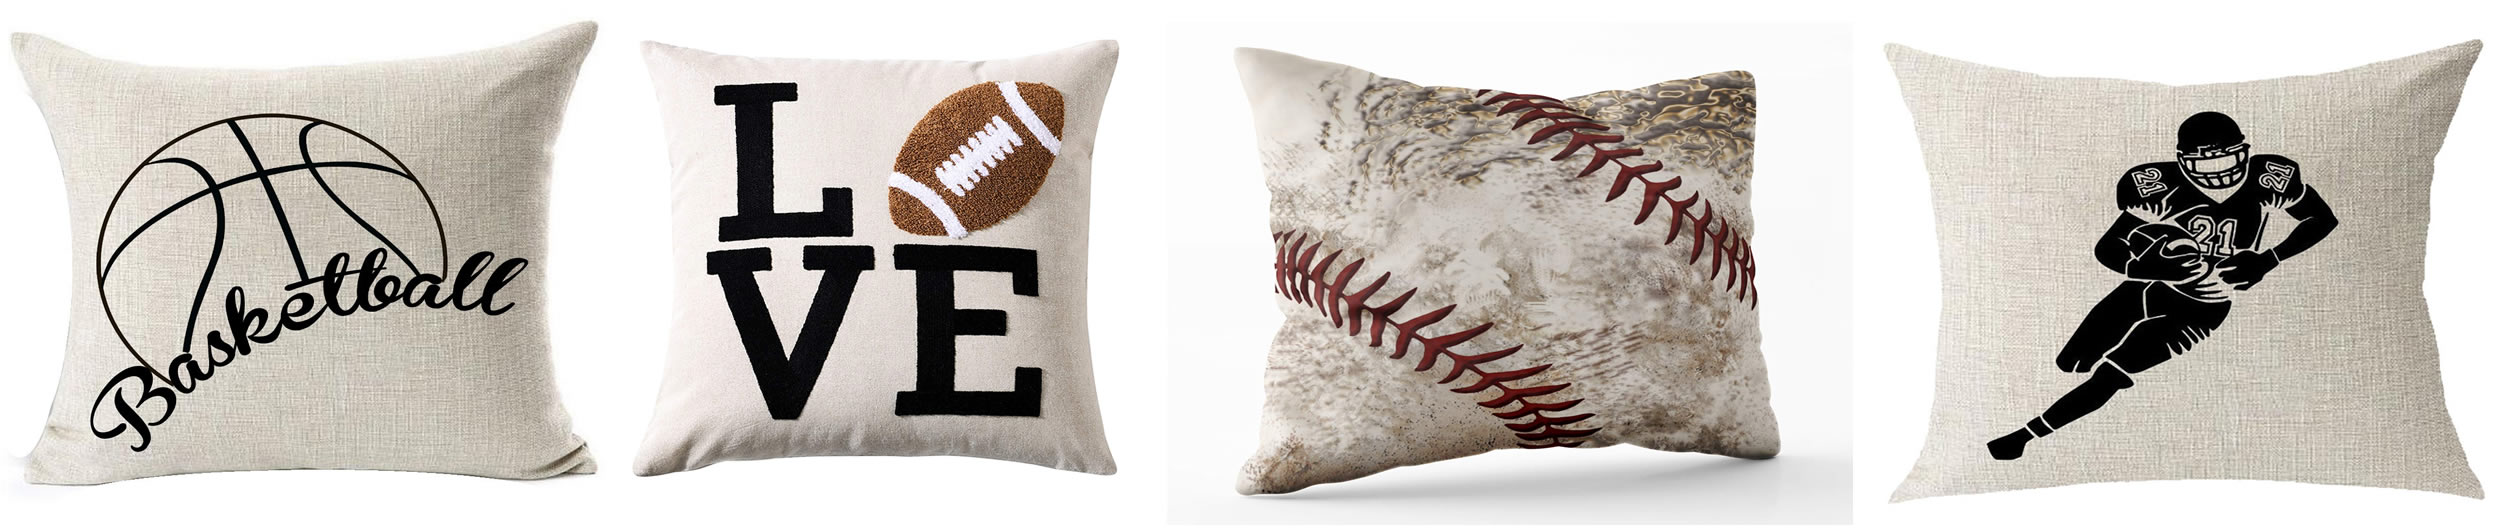 sports themed pillow covers